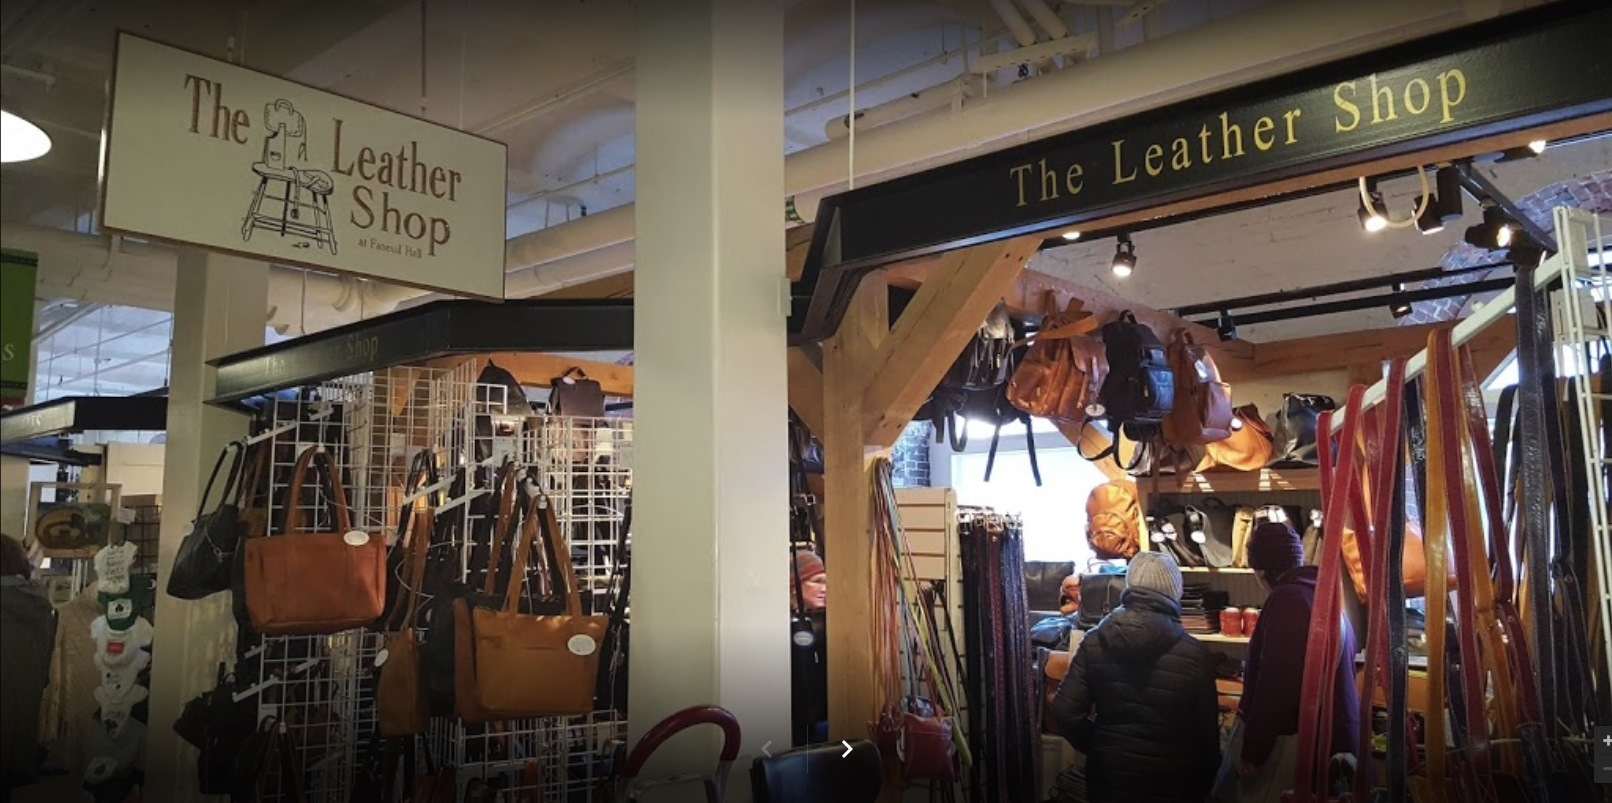 The Leather Shop at Faneuil Hall